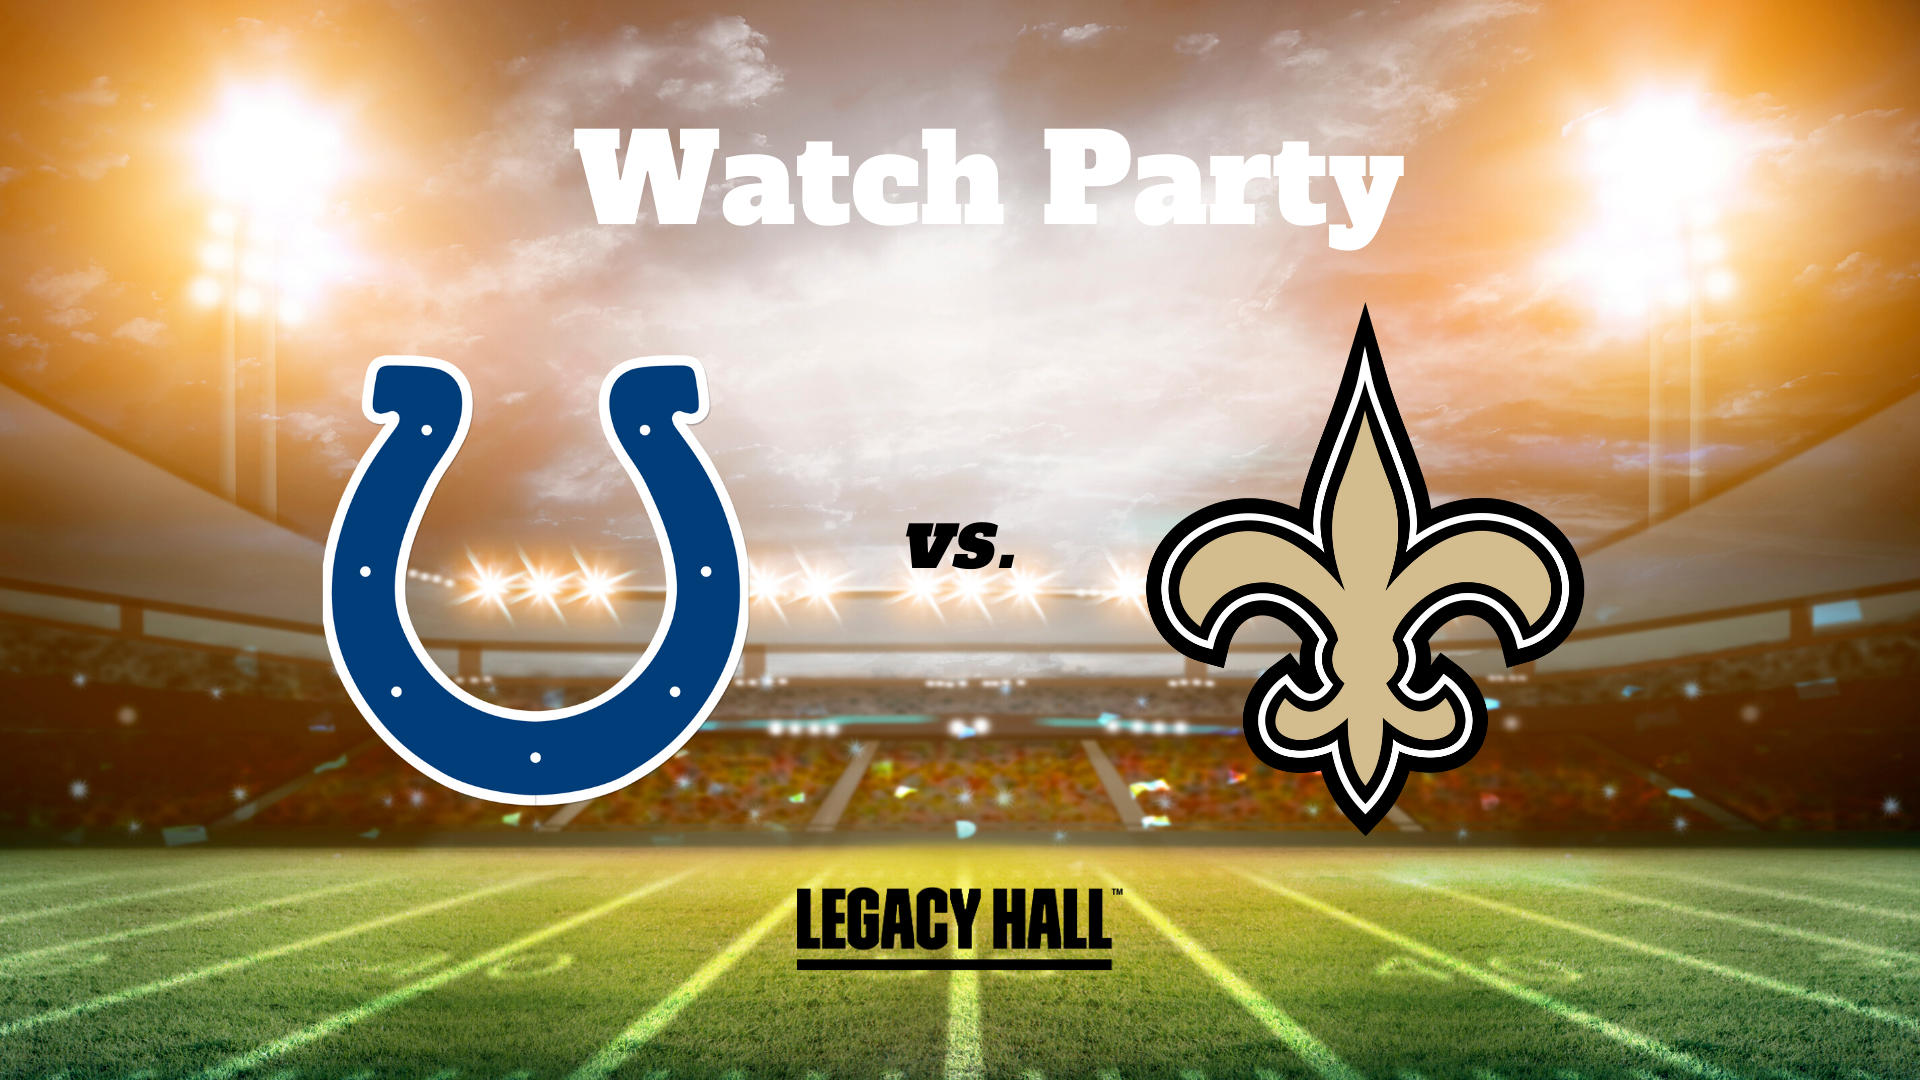 Colts vs. Saints Watch Party - hero